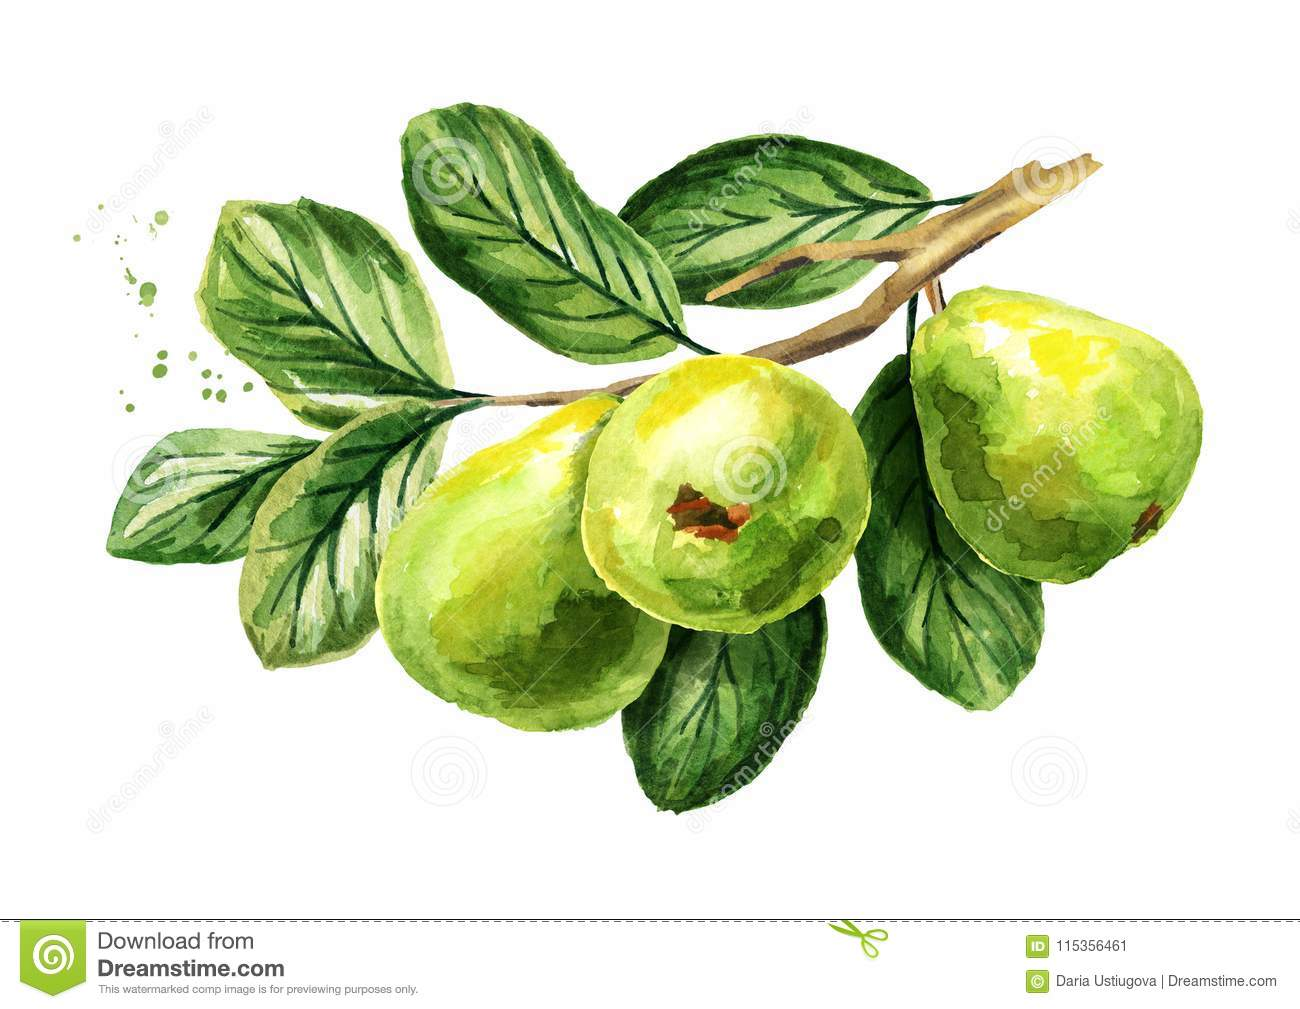 Fresh green guava branch with fruits, leaves and flowers. Watercolor hand drawn illustration, isolated on white background.